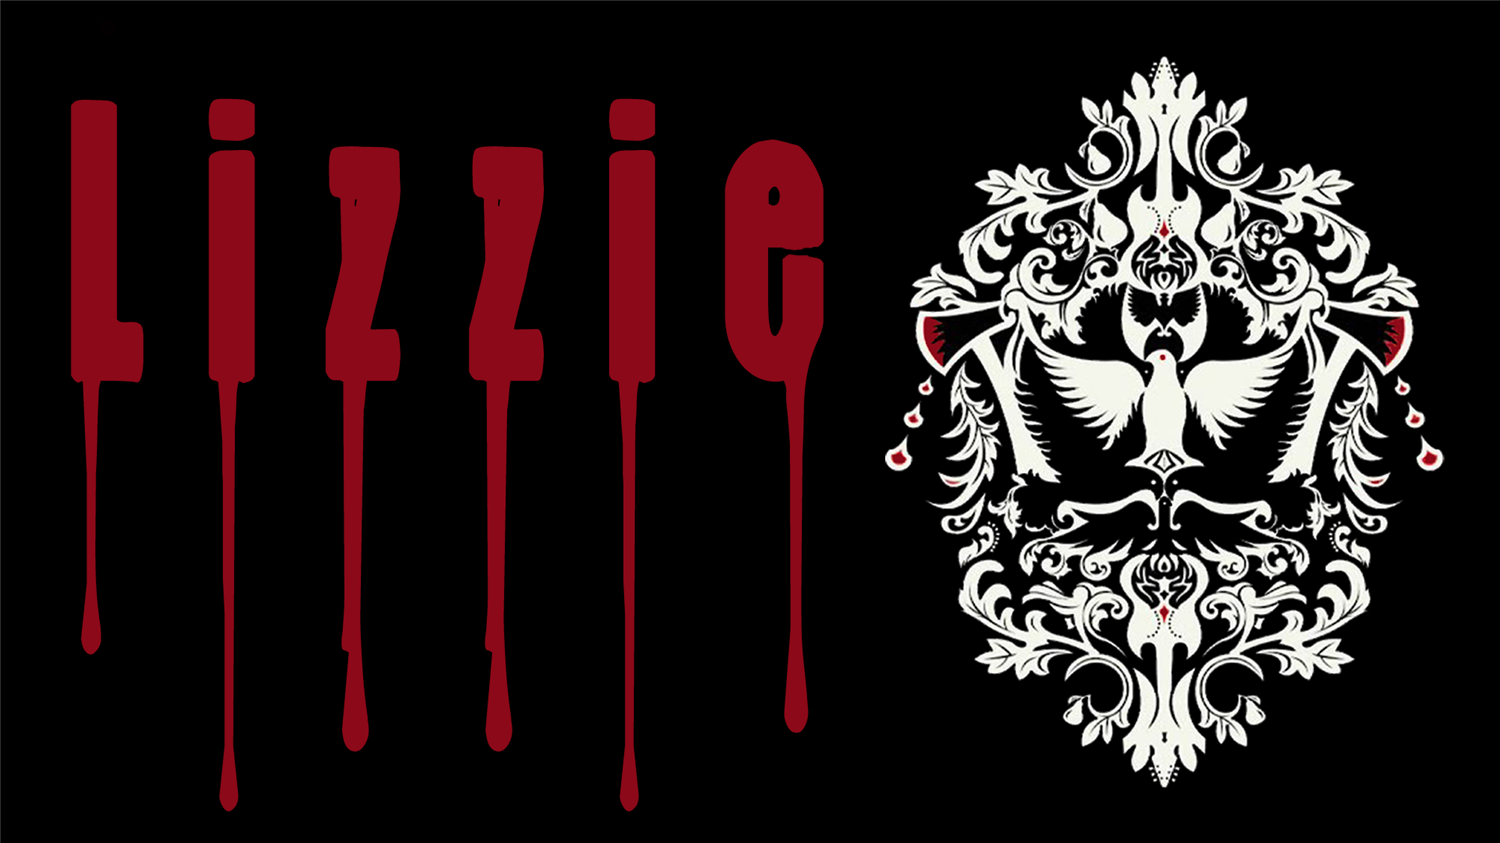 Lizzie The Lizzie Borden Musical on Nov 02, 00:00@Streaming Performance - Buy tickets and Get information on Forge Light Theatreworks